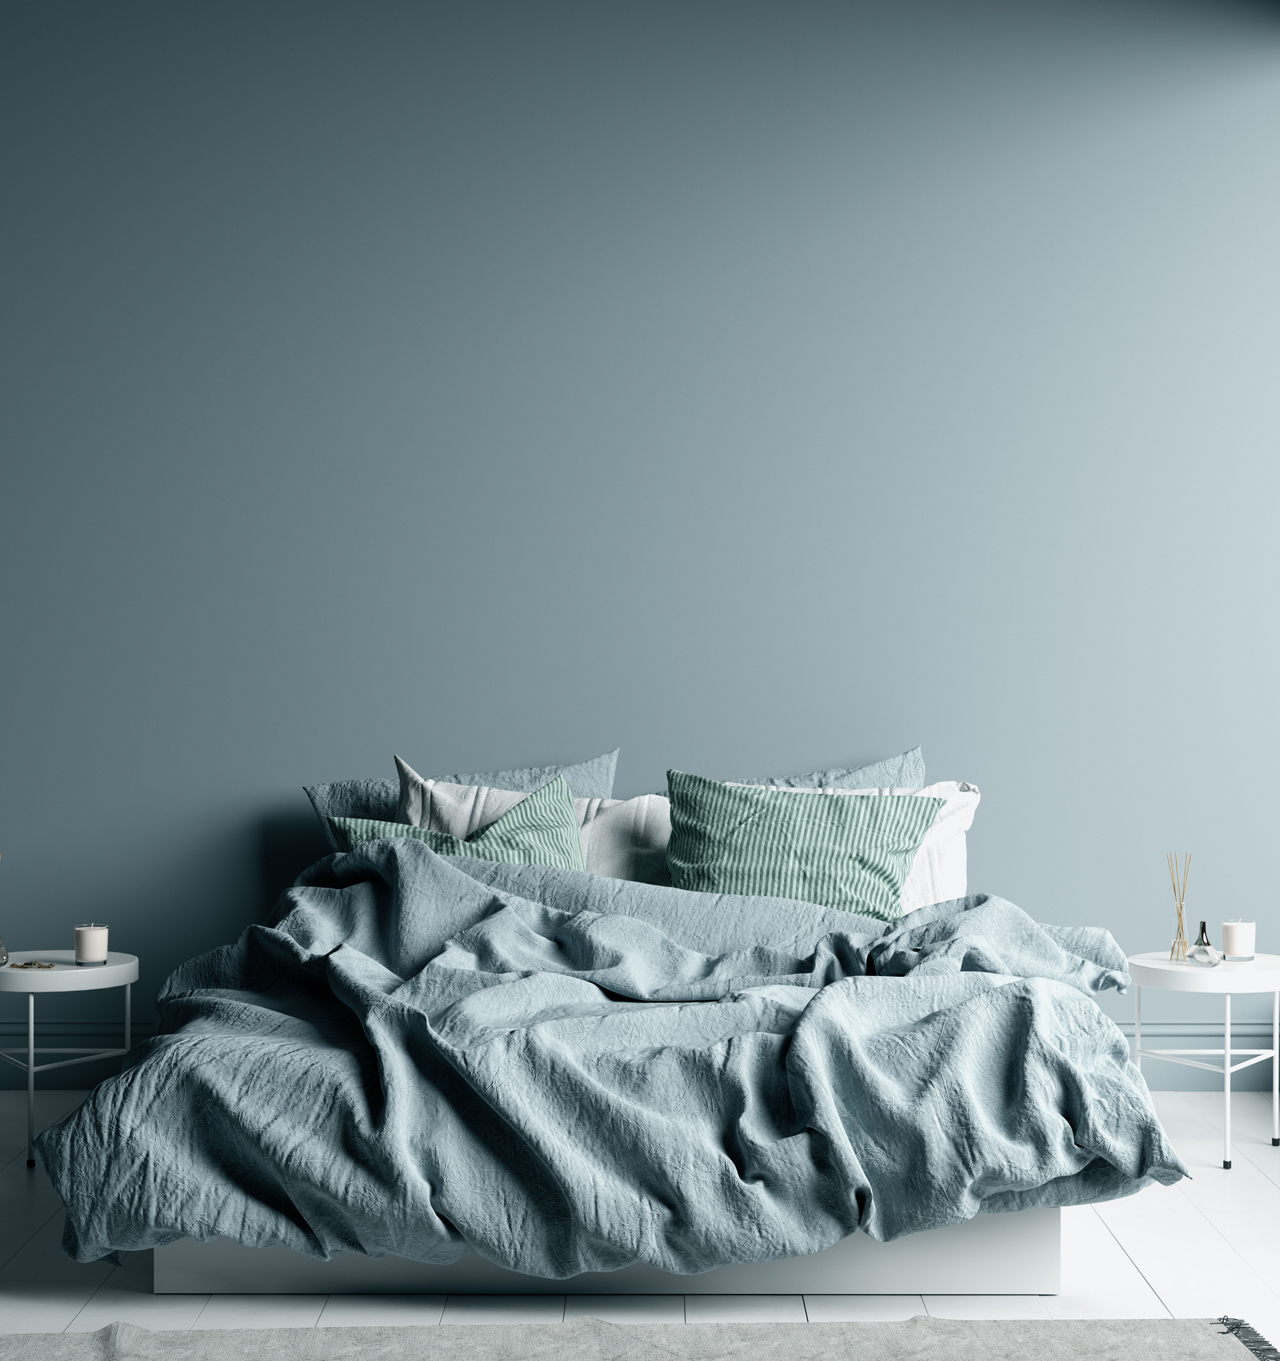 bigstock-Dark-Cold-Blue-Bedroom-Interio-342382900.jpg